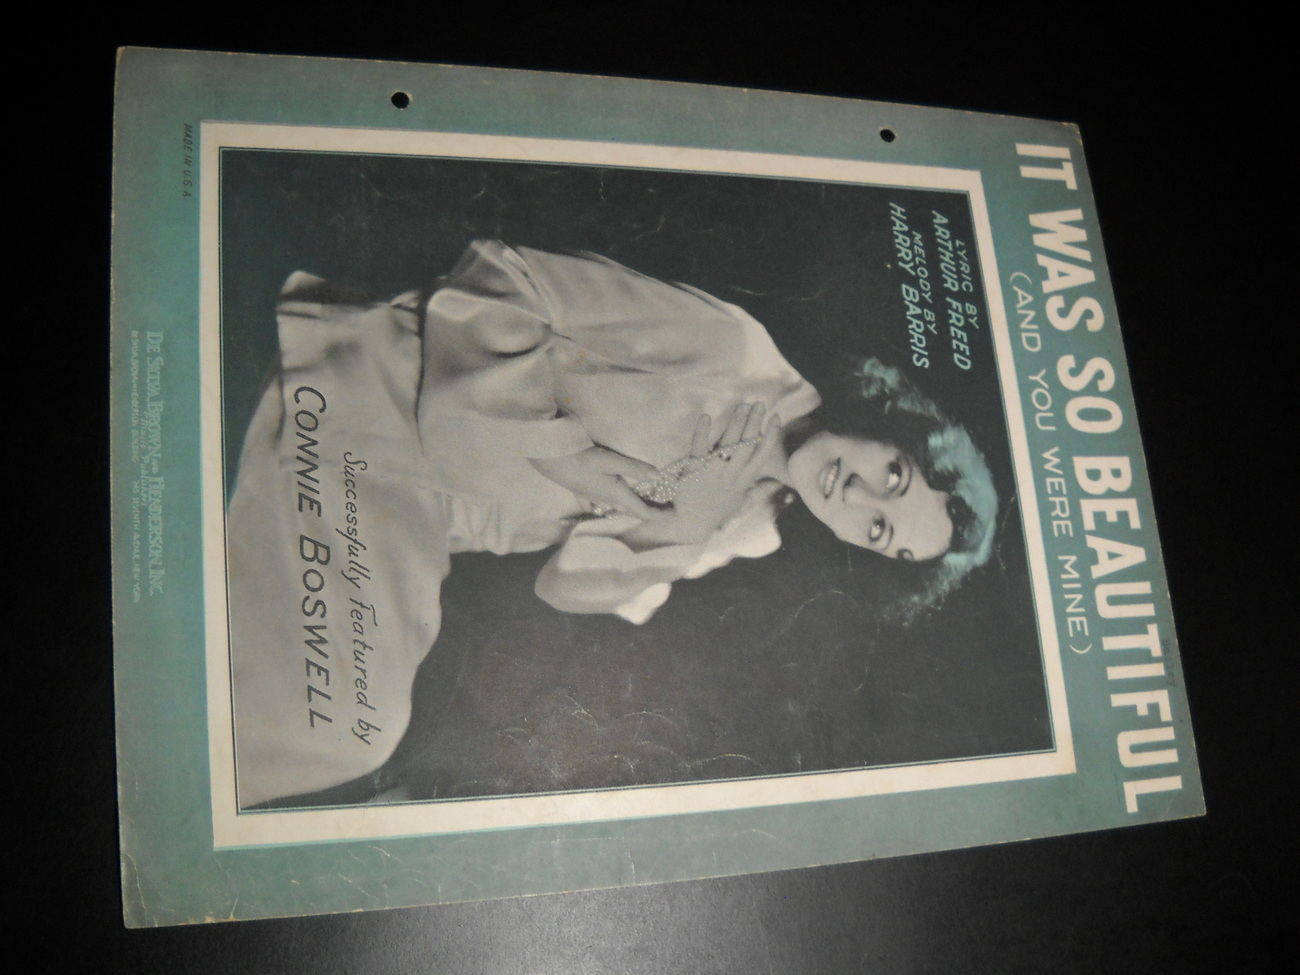 Sheet_music_it_was_so_beautiful_and_you_were_mine_connie_boswell_1932_desylva_brown_01